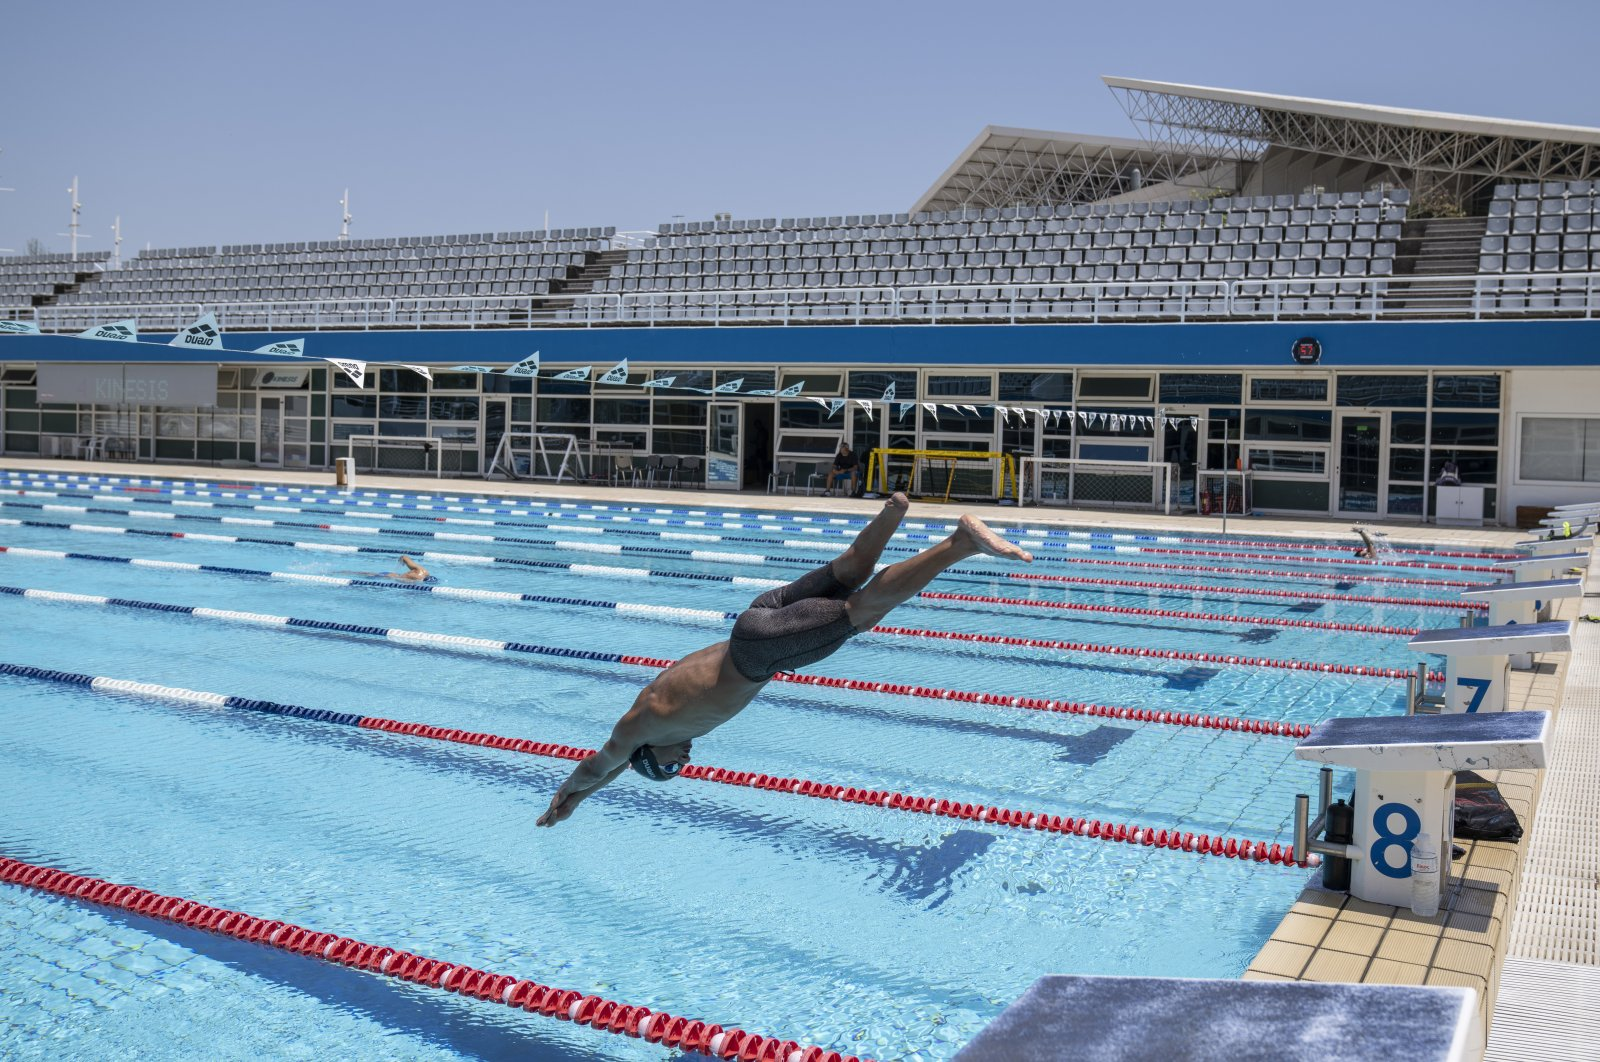 Syrian refugee Ibrahim al-Hussein, an amputee swimmer who lost his leg during the war in Syria, dives during training at the Olympic Aquatic Center, Athens, Greece, June 30, 2021. (AP Photo)